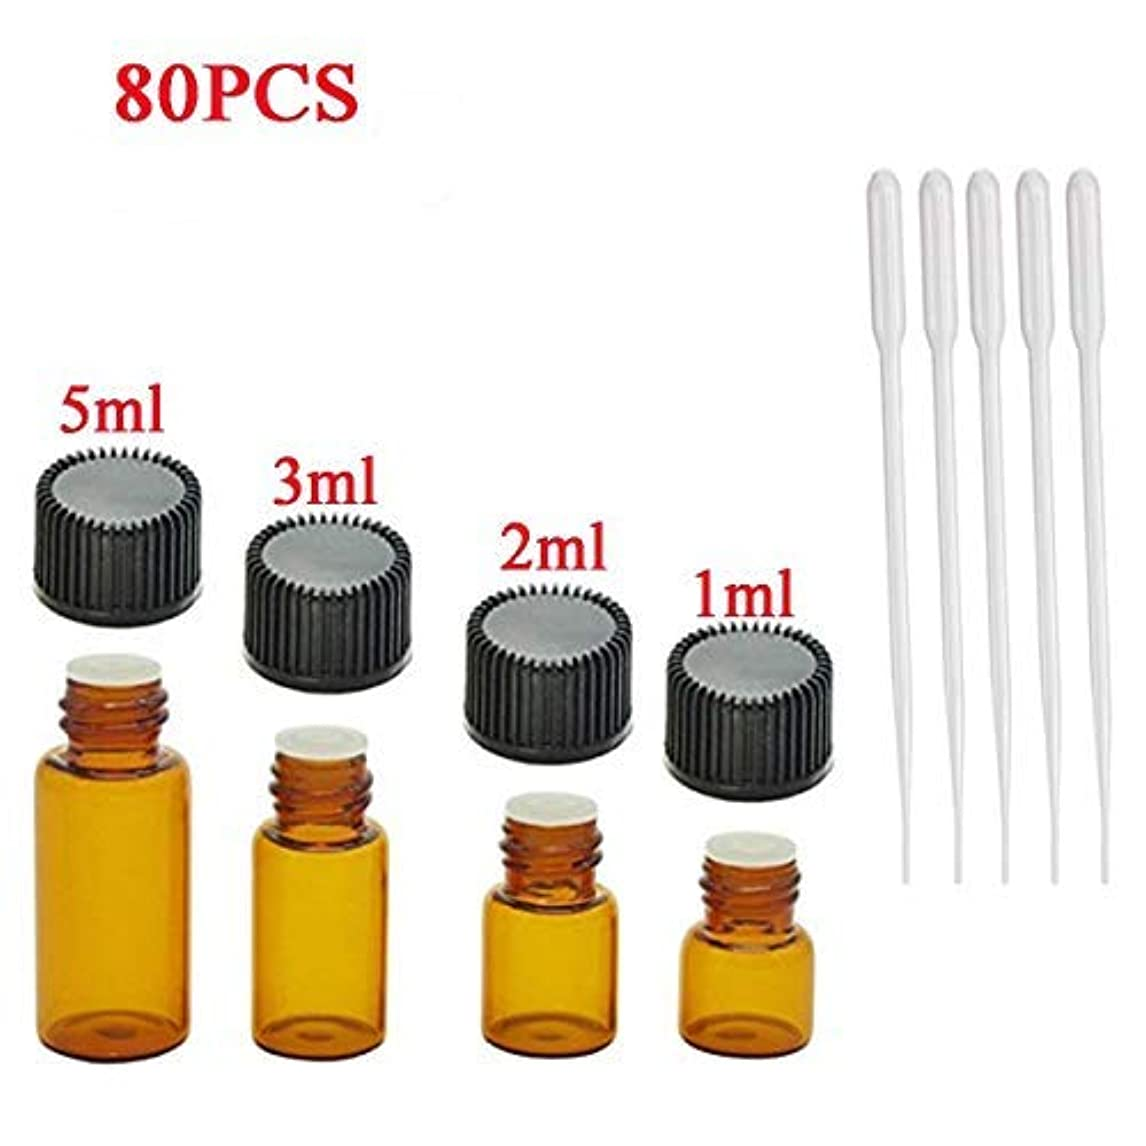 ティーム欲望高さCsdtylh 80pcs Essential Oils Bottles 5pcs Plastic Transfer Pipette, Doubletwo Amber Glass Vials Bottles 1ml 2ml...